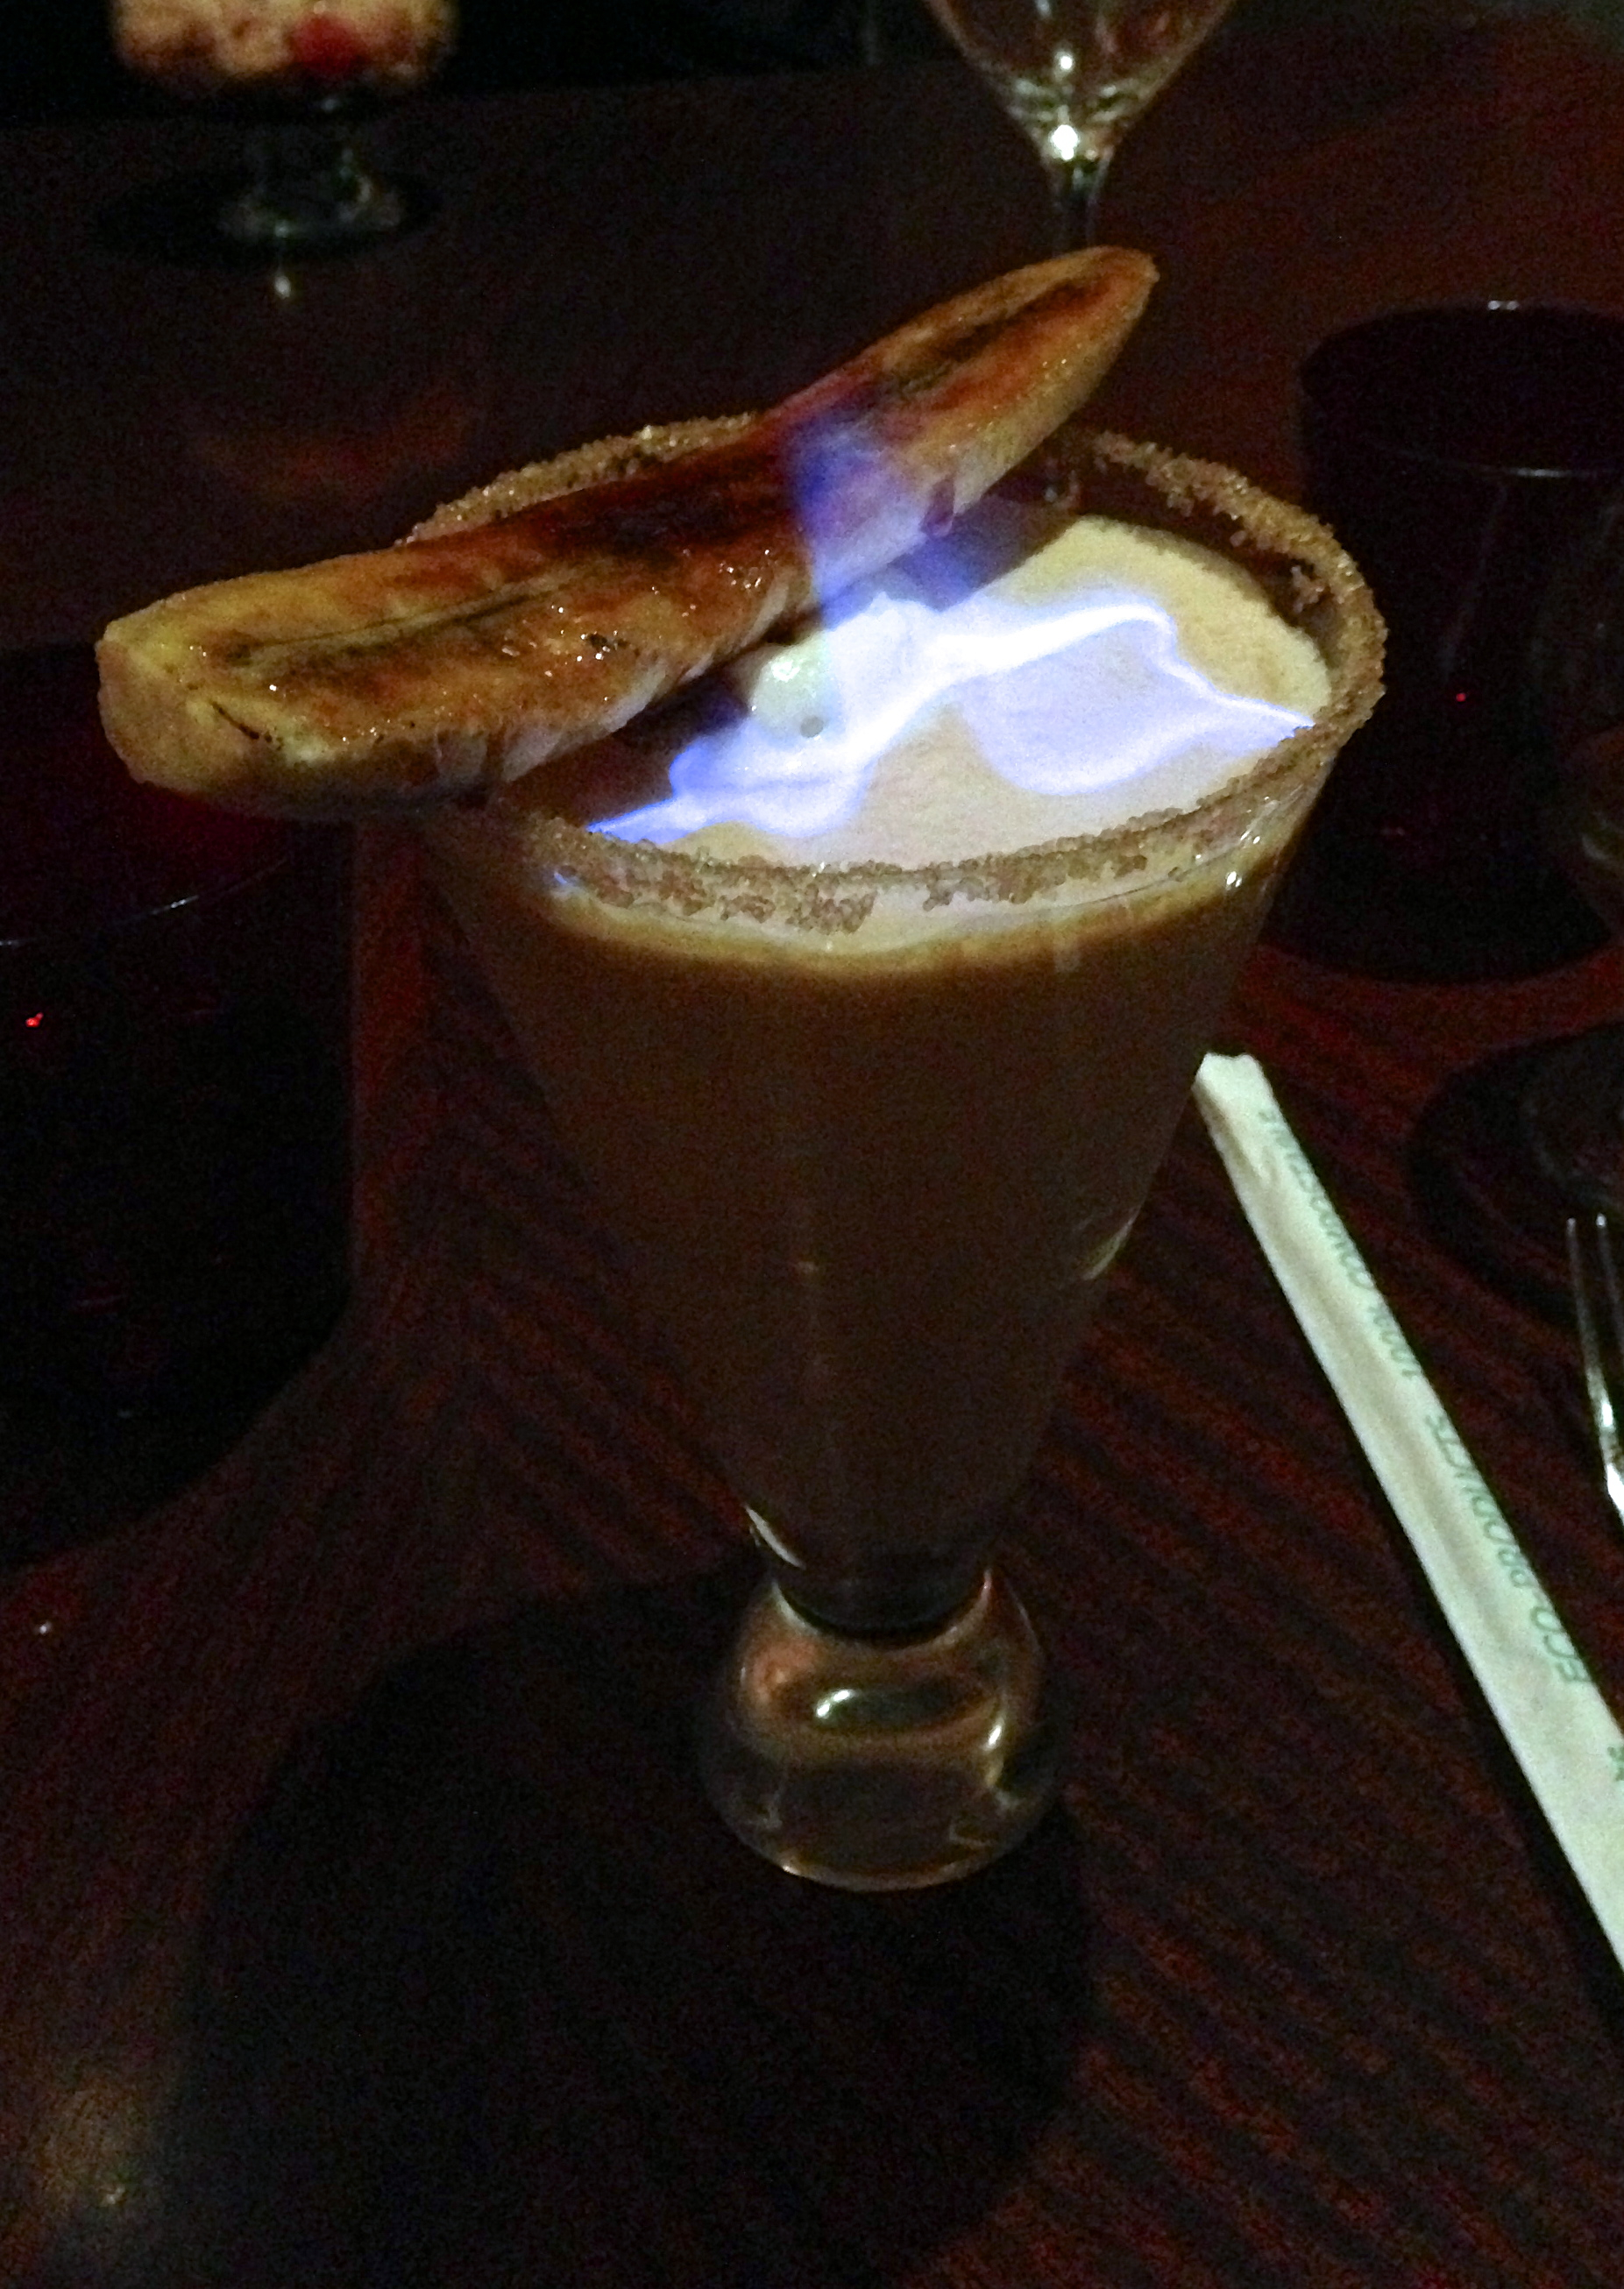 Figure 15. Flaming banana foster